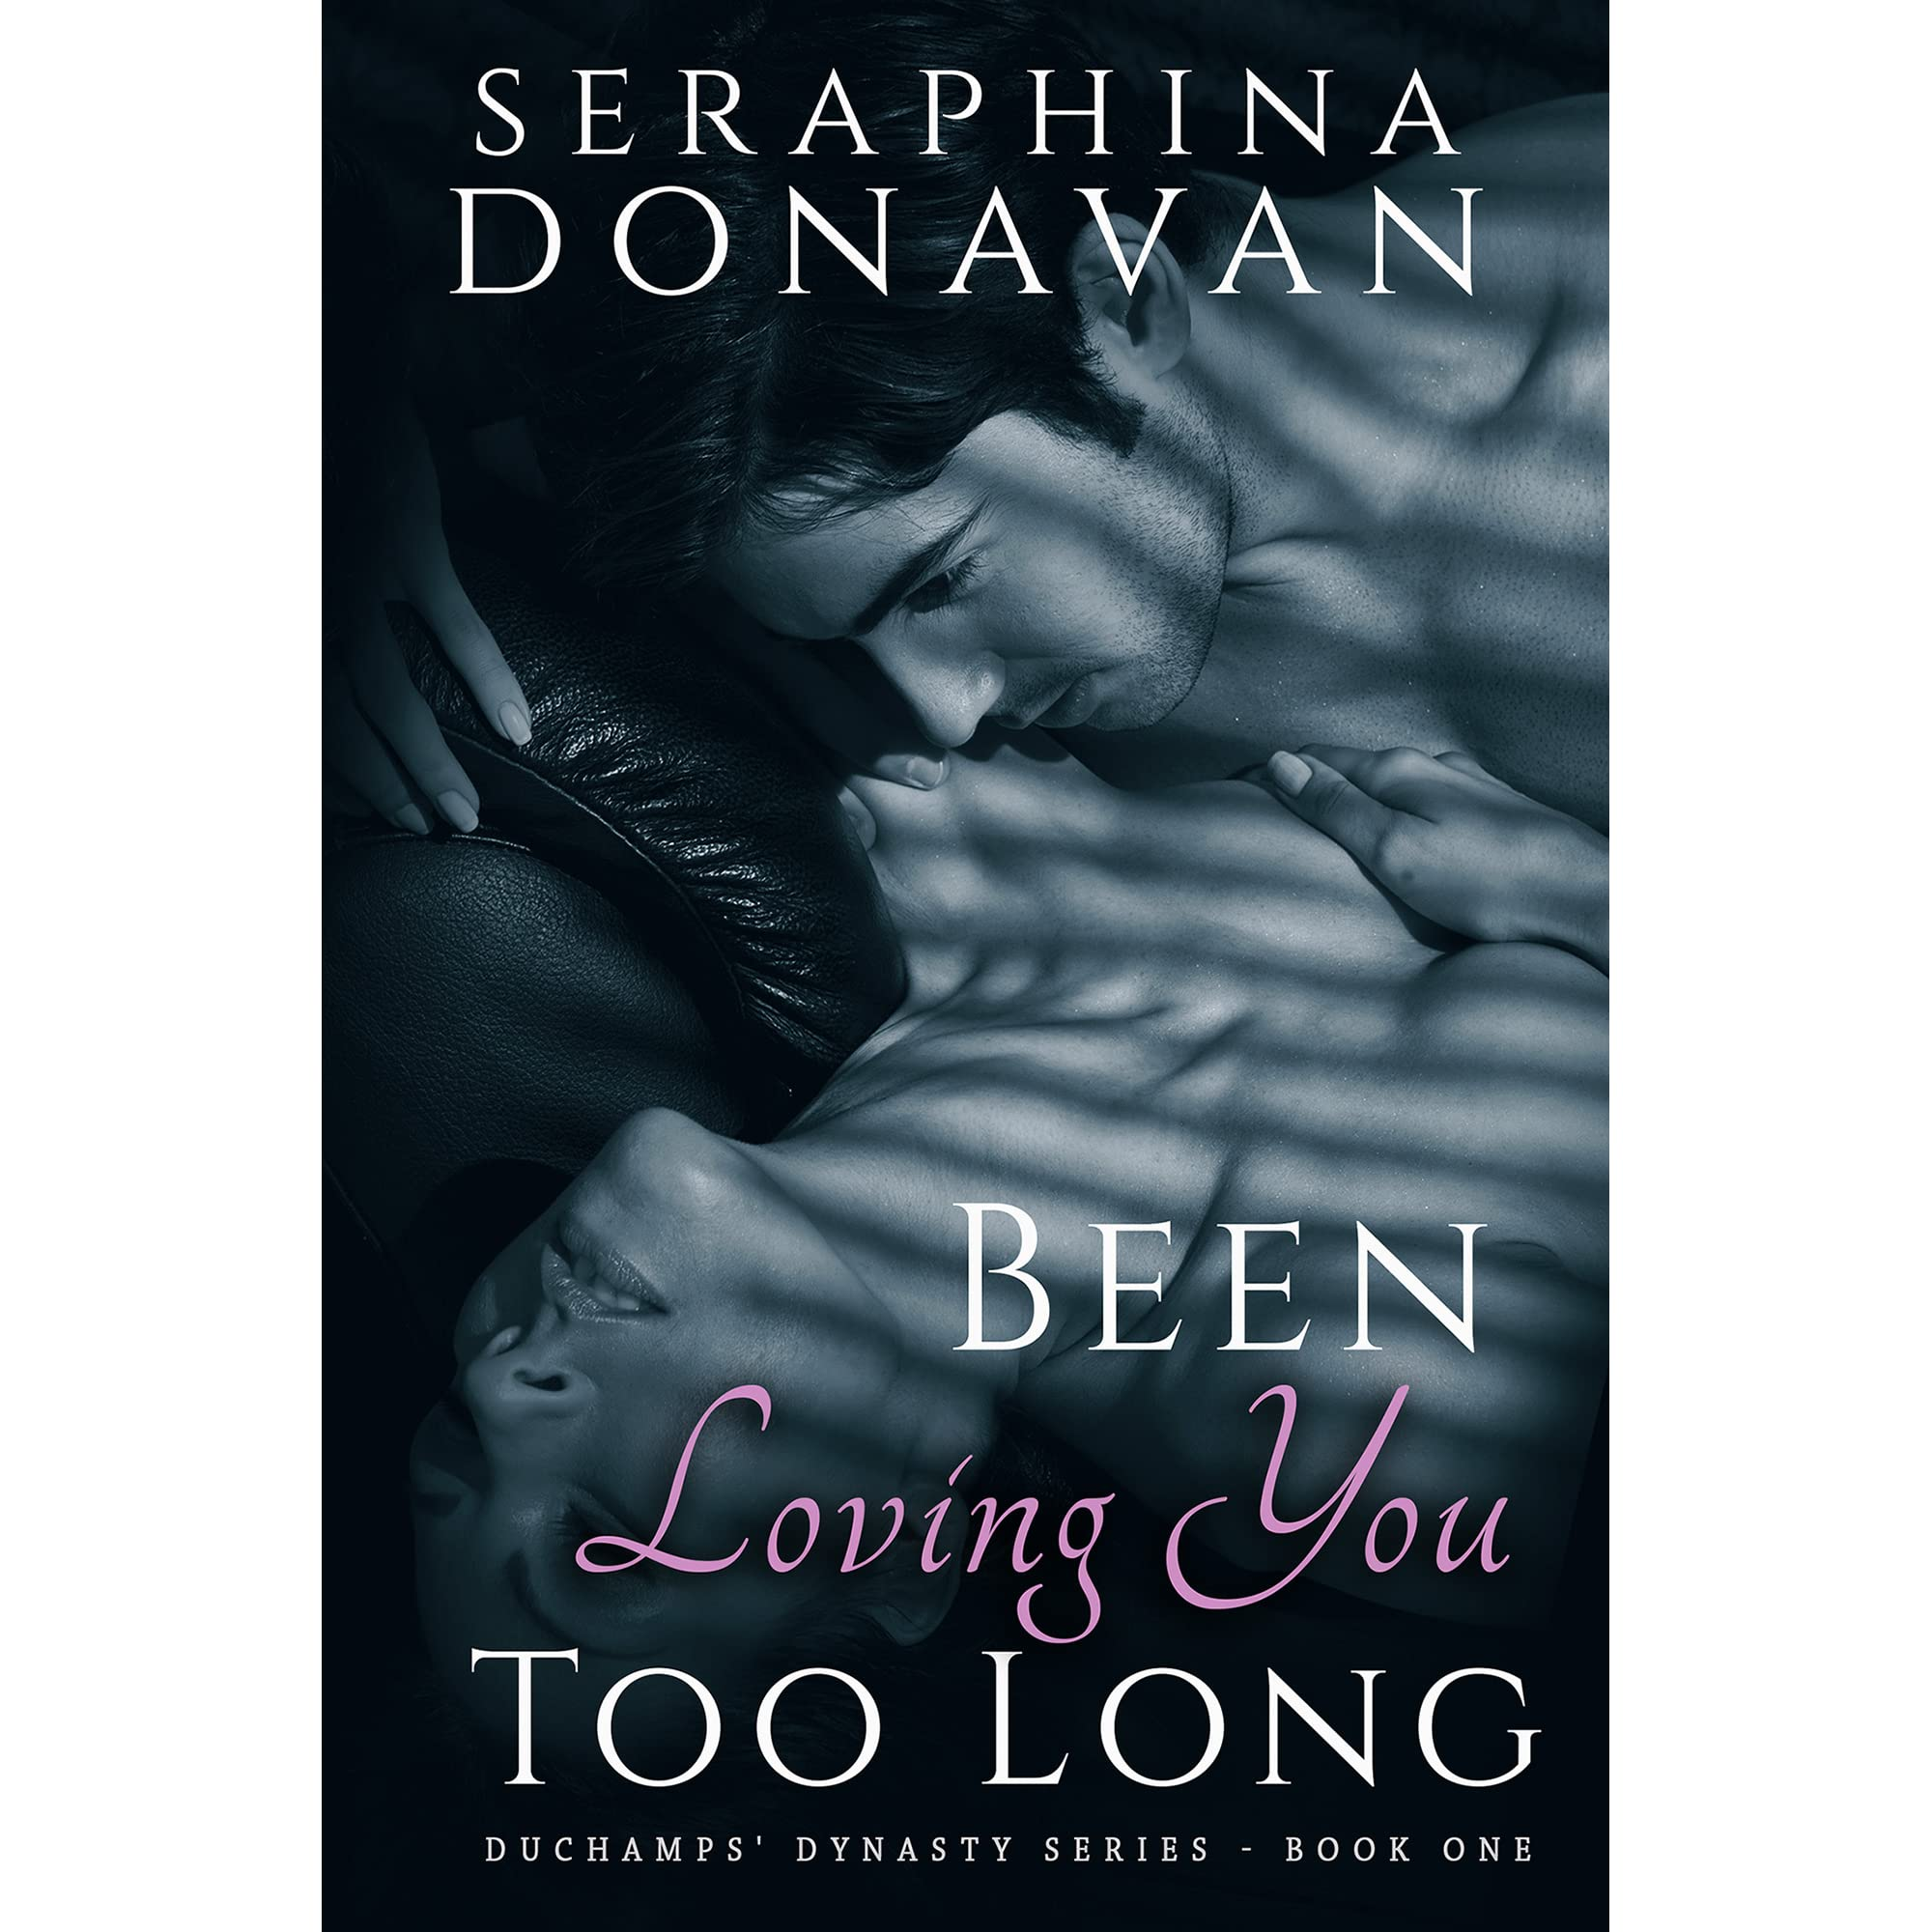 Been Loving You Too Long Seraphina Donavan Pdf